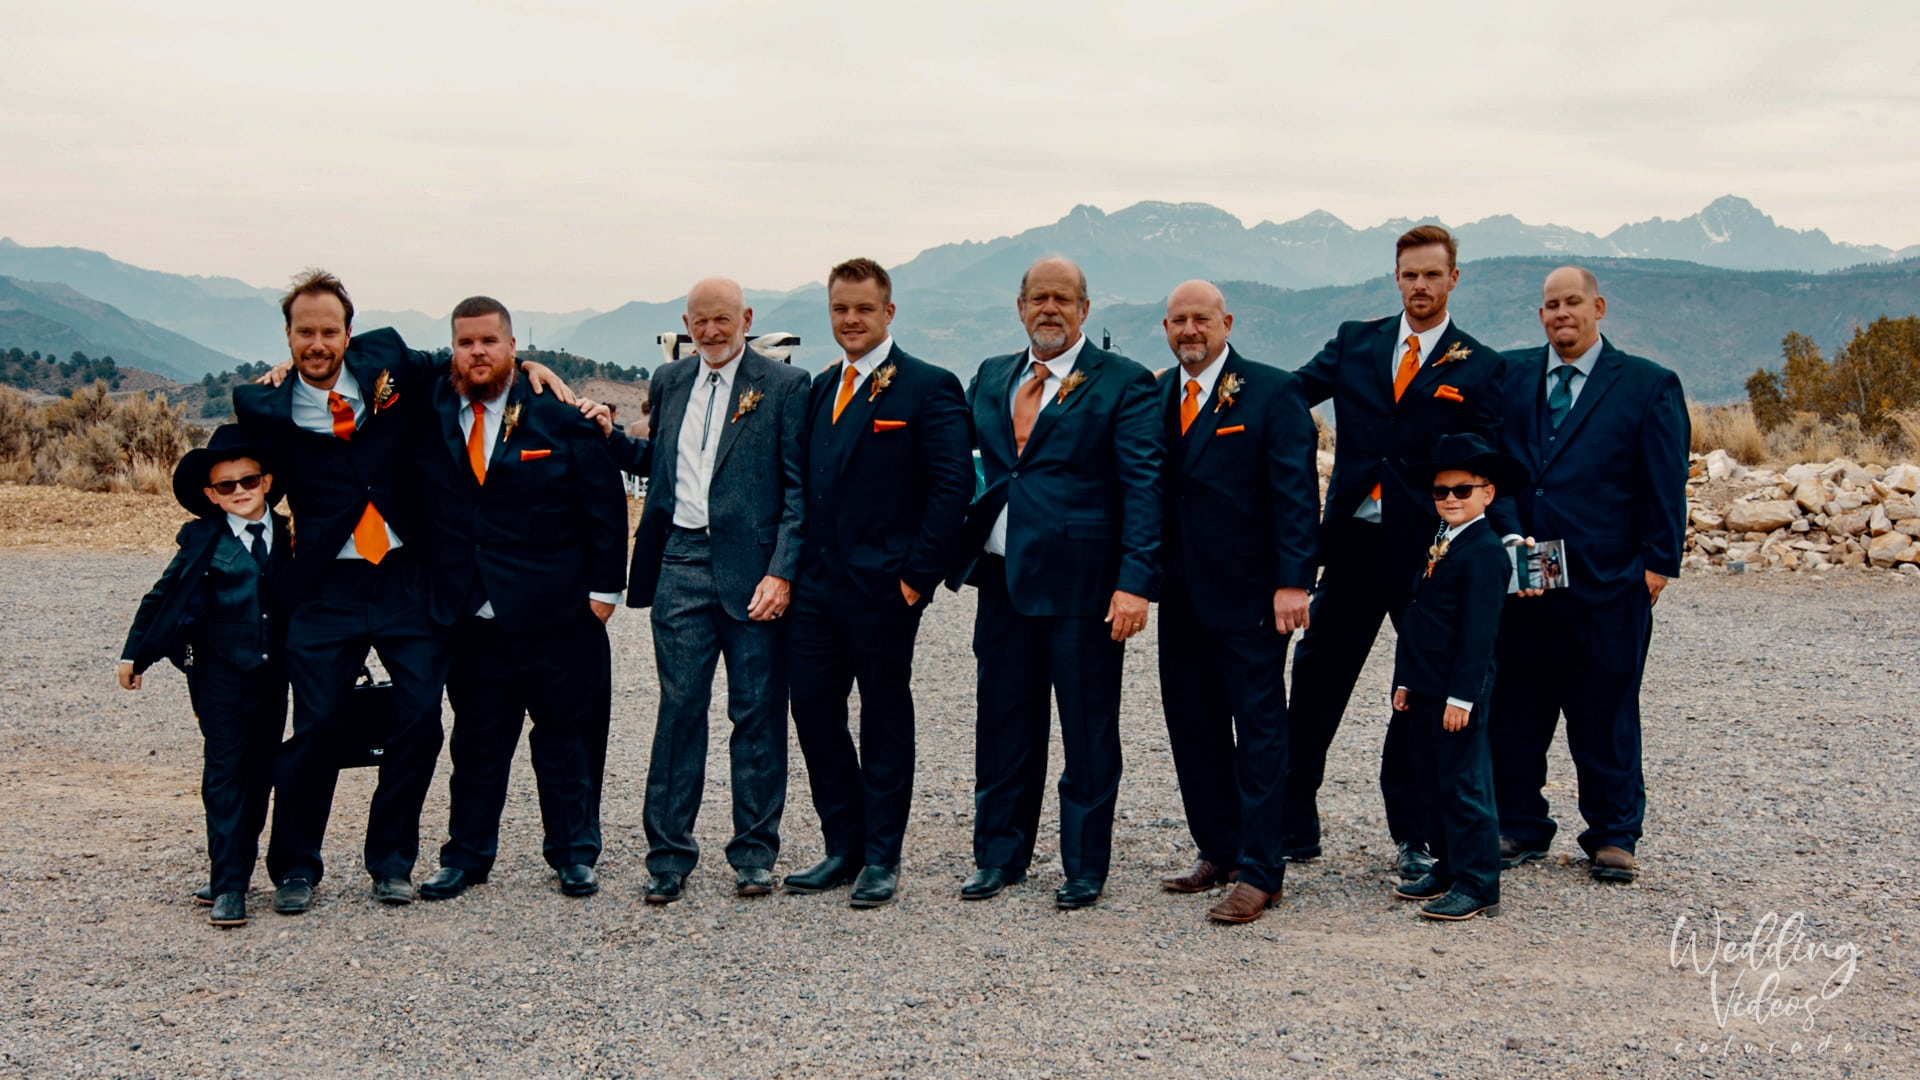 Matthew Celeste Wedding Ridgeway Colorado black canyon stables